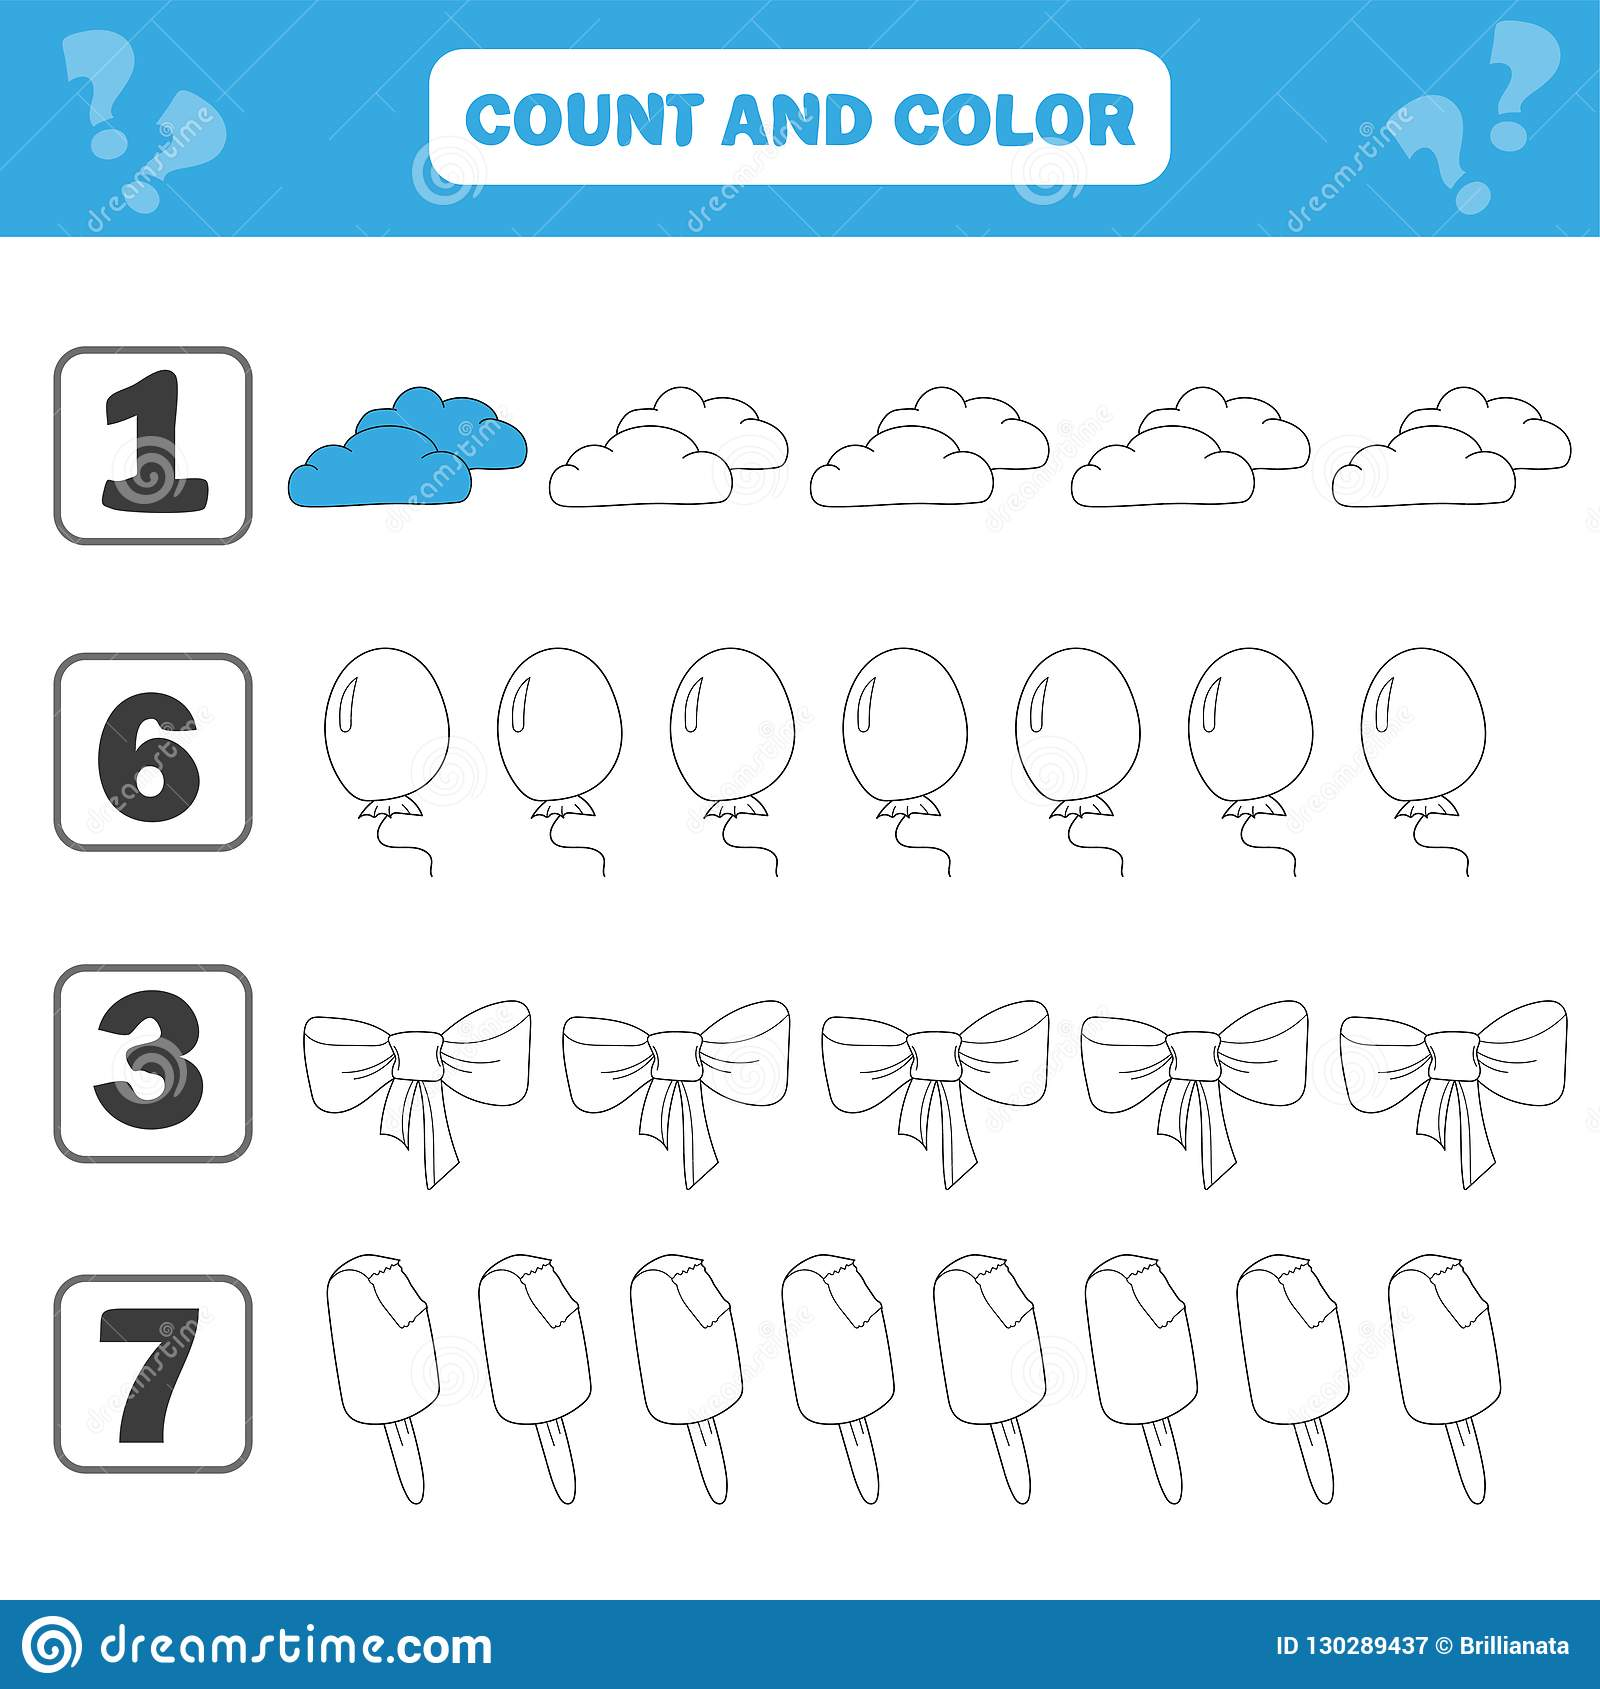 Mathematics Worksheet For Kids. Count And Color Educational Children ...